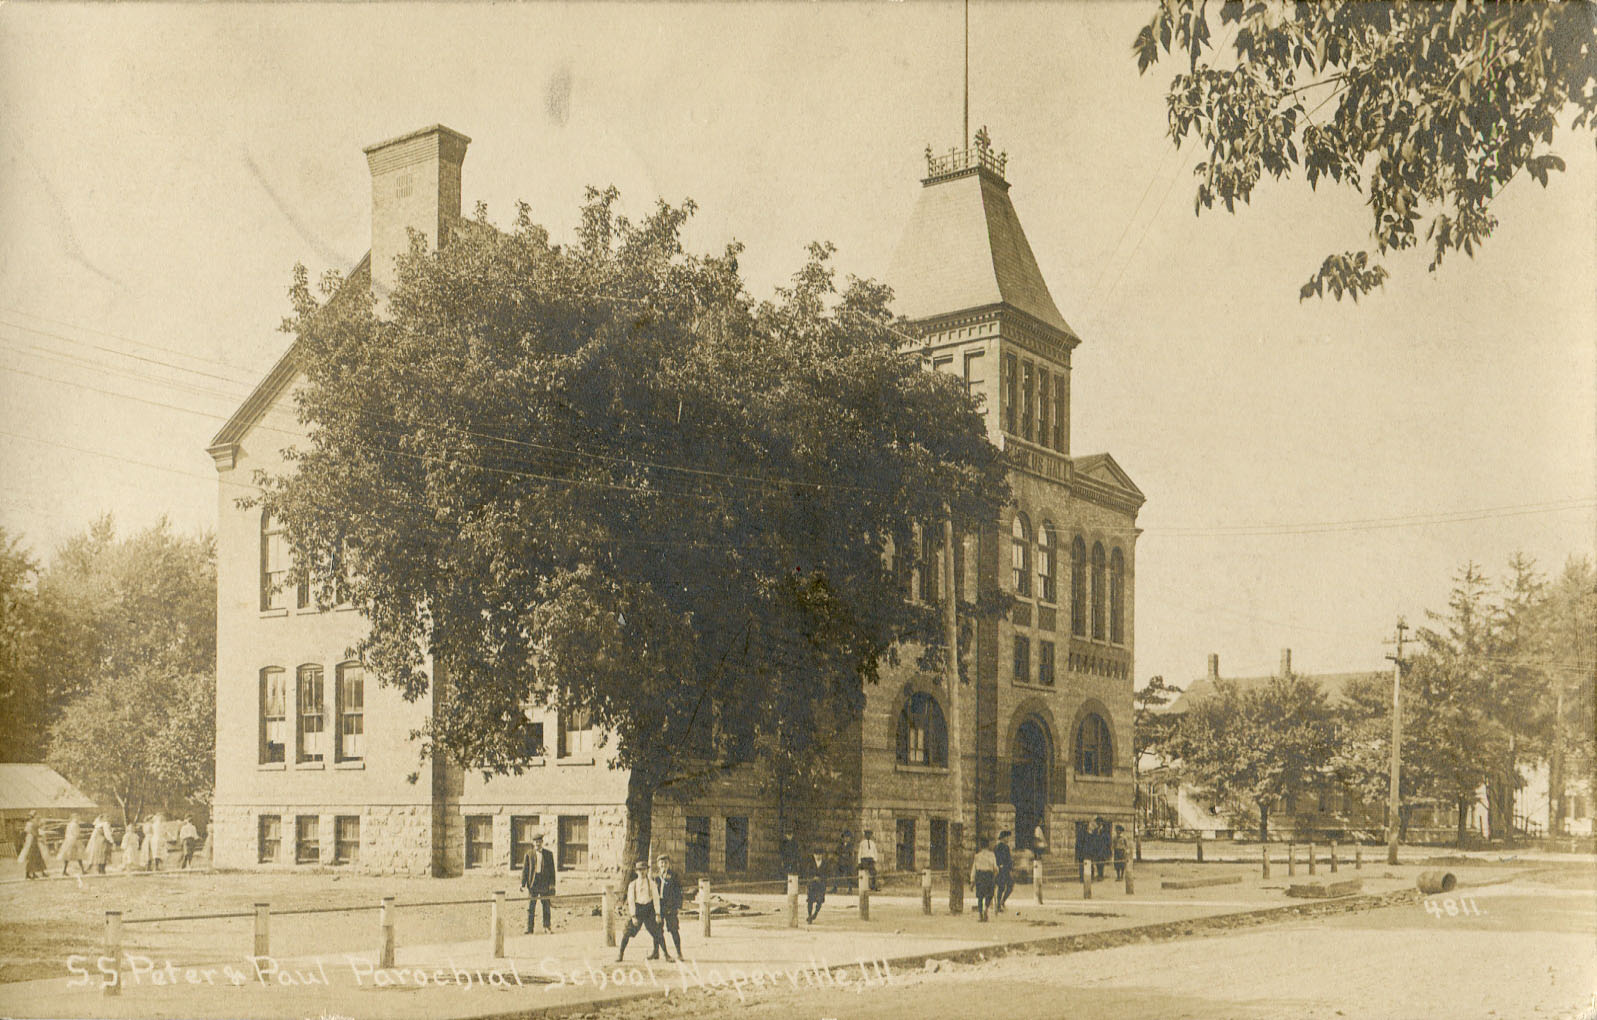 SS Peter and Paul School postcard